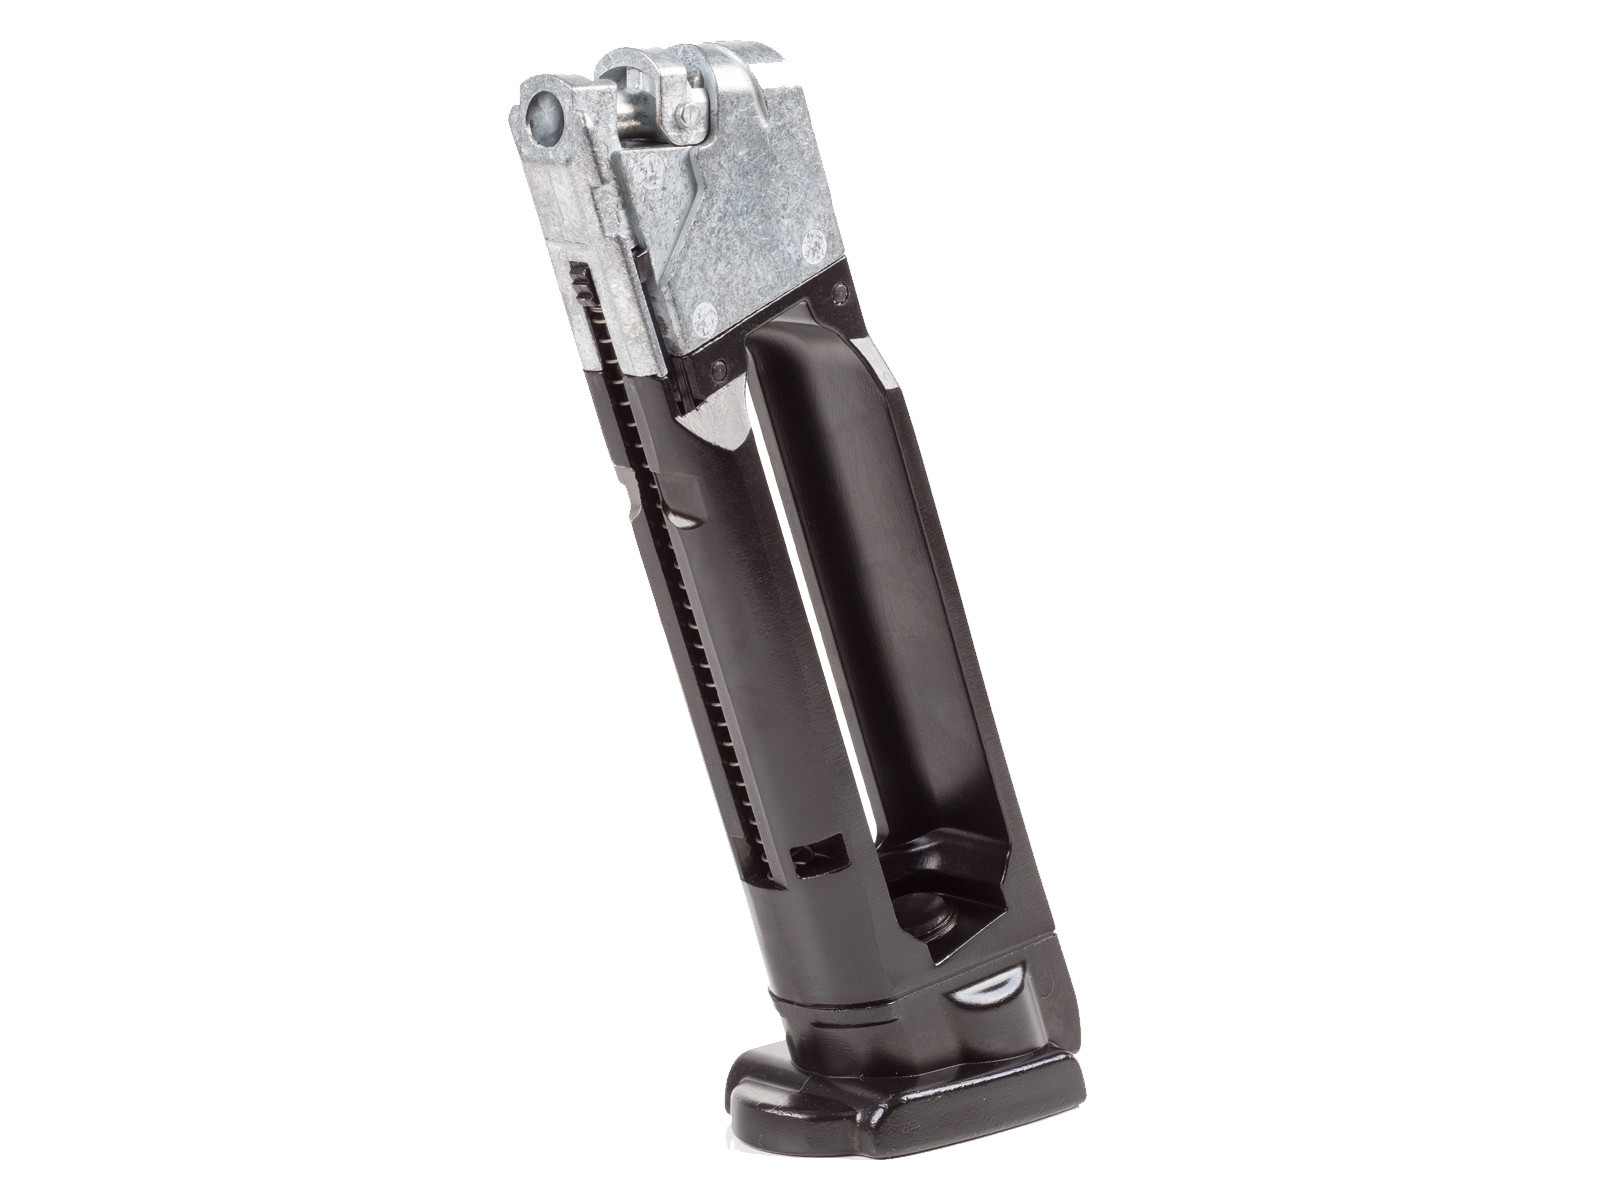 H&K VP9 Co2 Airsoft Pistol 14rd Magazine